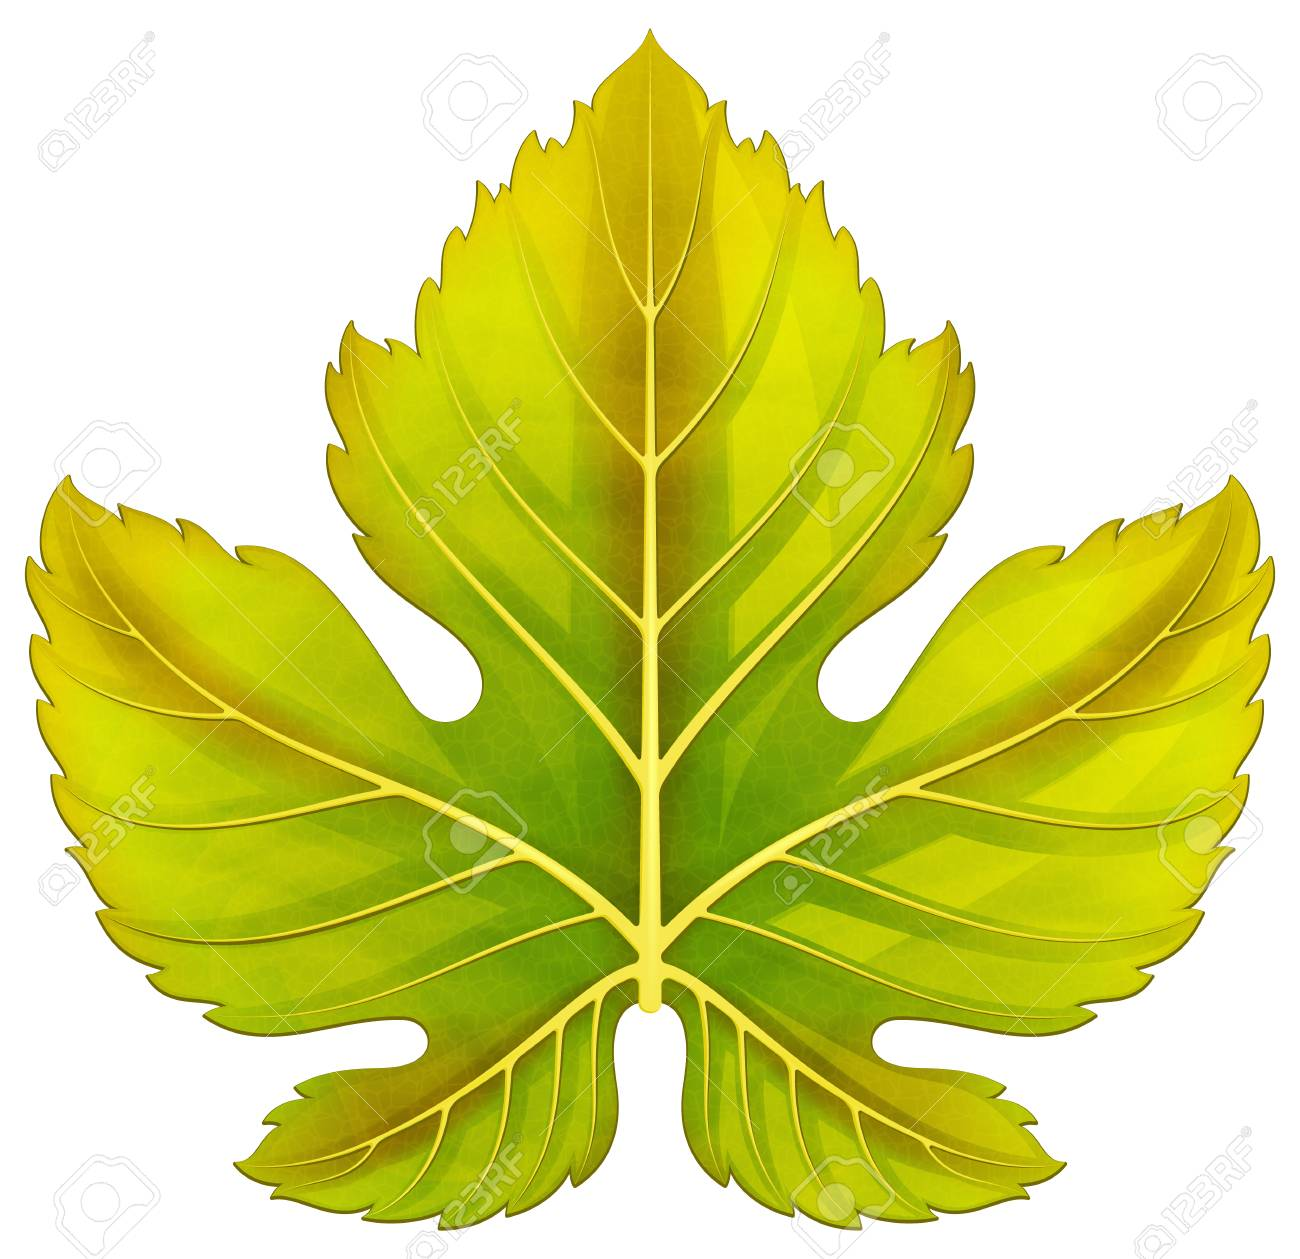 Grape Leaf Vector Illustration Royalty Free Cliparts Vectors And Stock Illustration Image 98295859